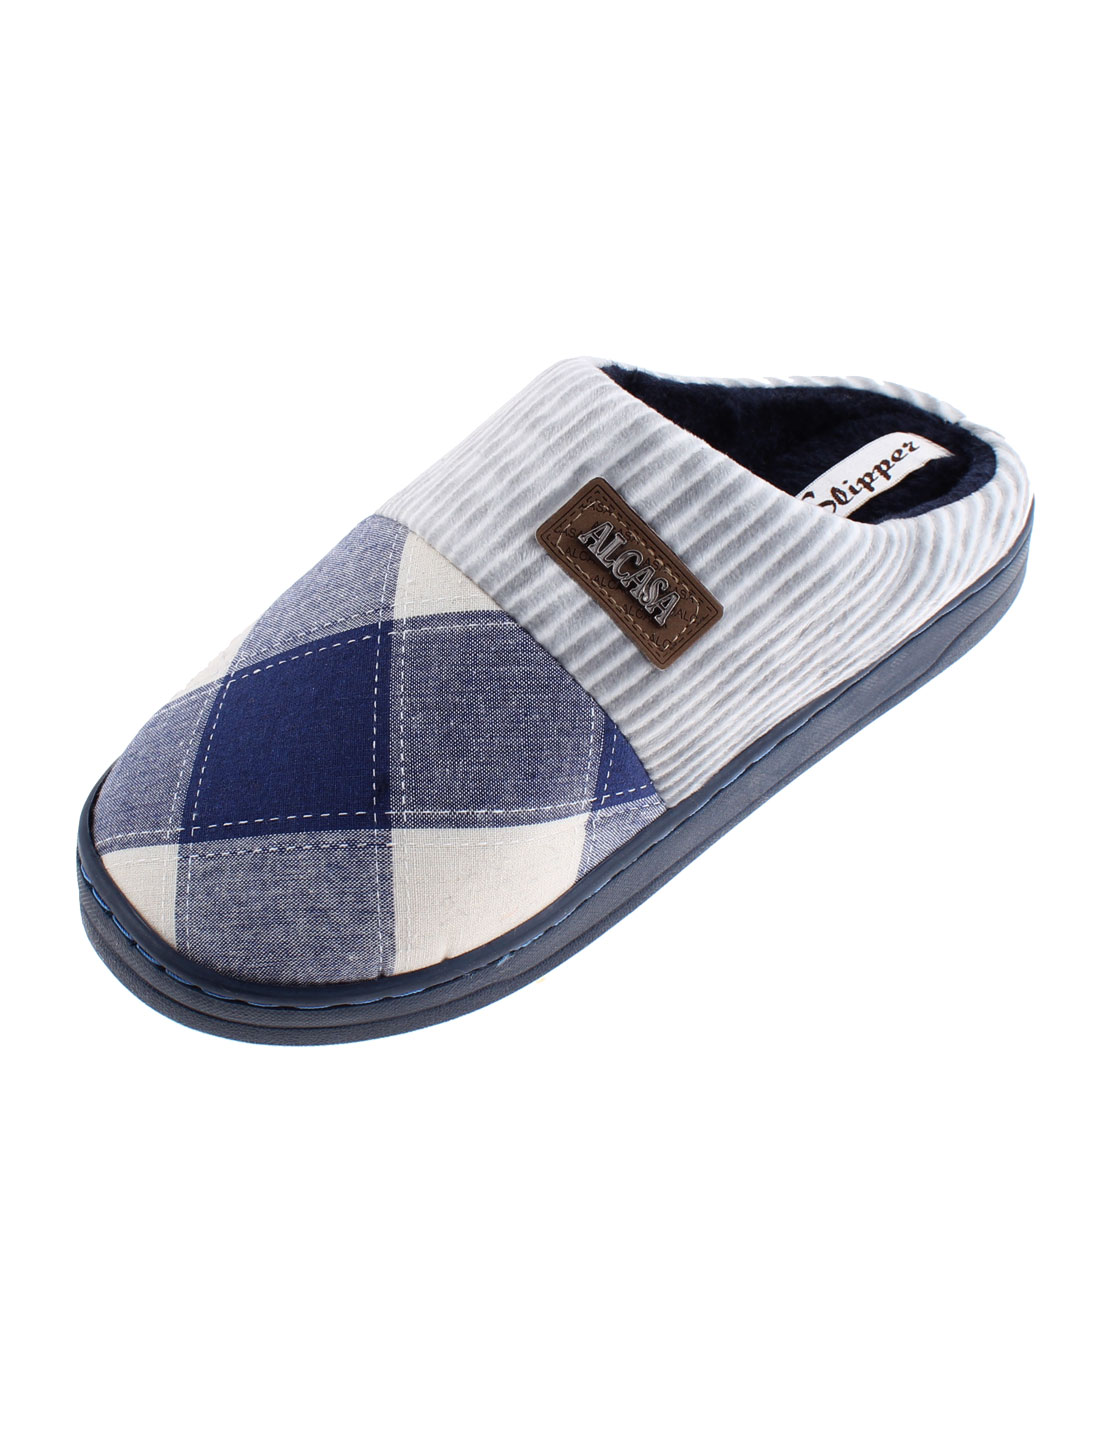 Home Women Grid Pattern Non-skid Sole Warmer Cotton Slippers Blue US 8.5